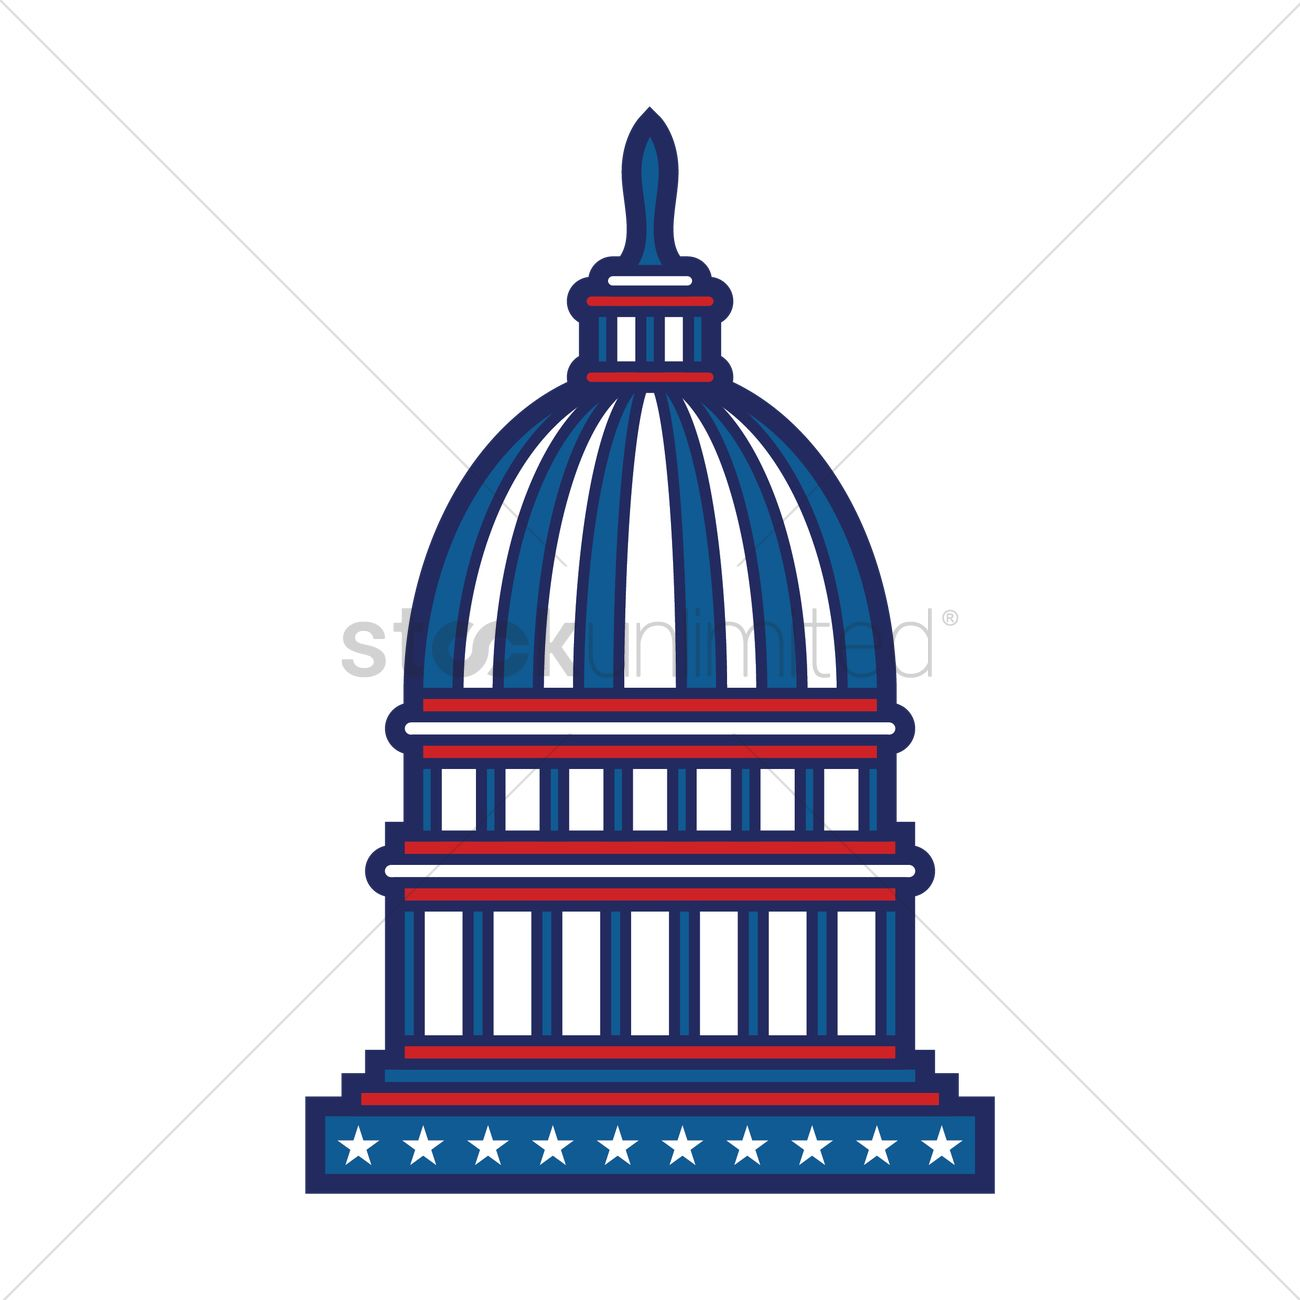 usa capitol building vector image 1557631 stockunlimited rh stockunlimited com capitol building vector free capitol building vector free